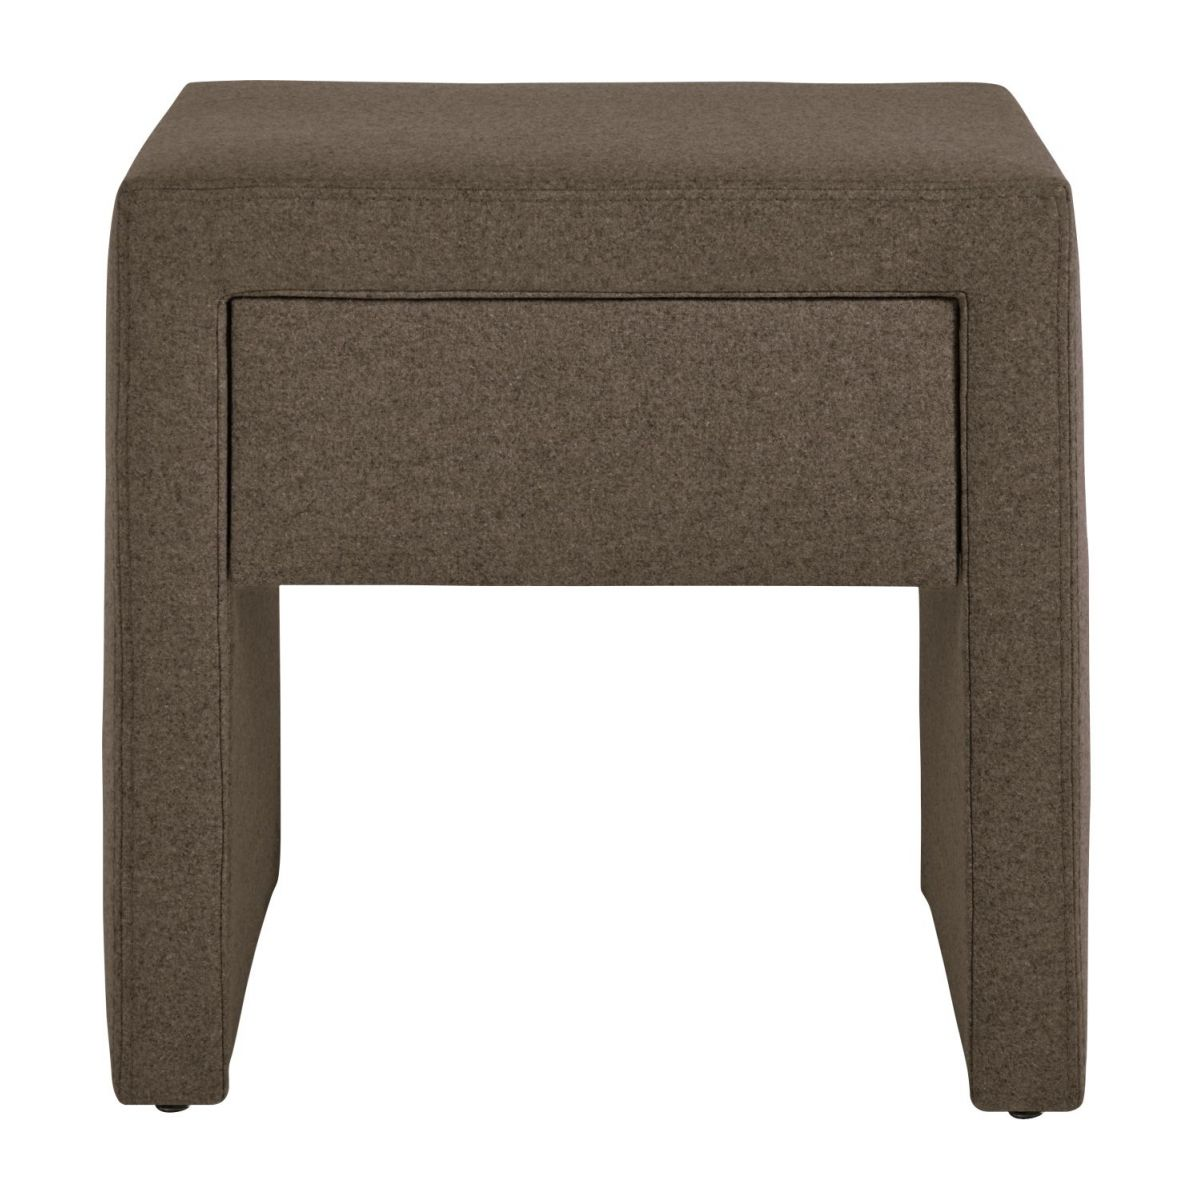 Table de chevet en feutrine - Beige n°2